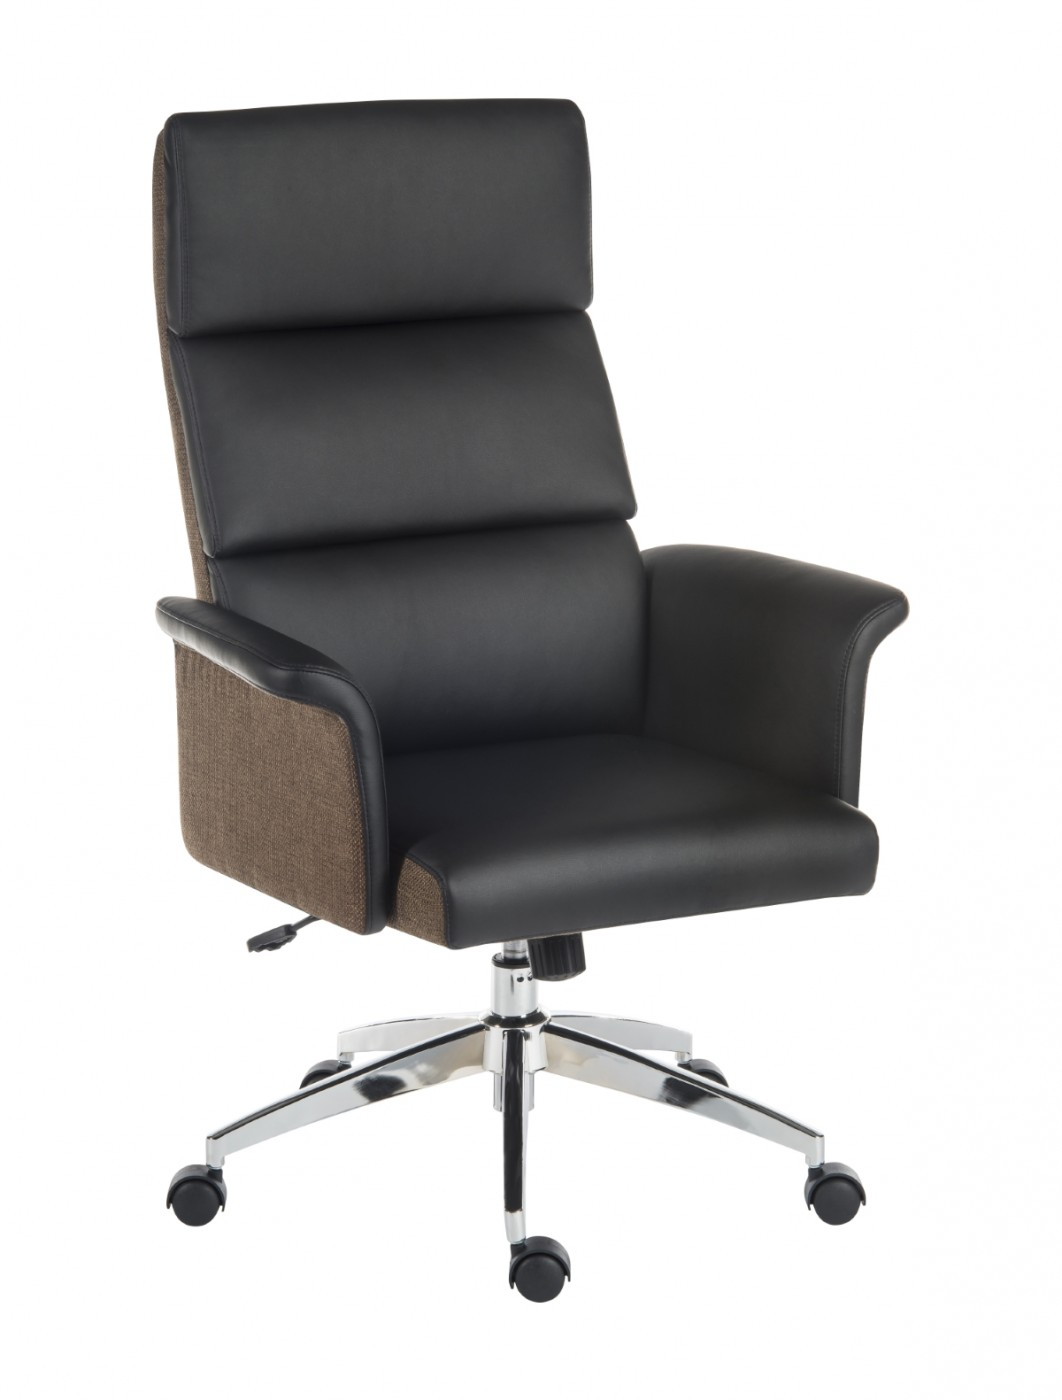 Executive Chairs Office Chairs Teknik Elegance High Back Executive Office